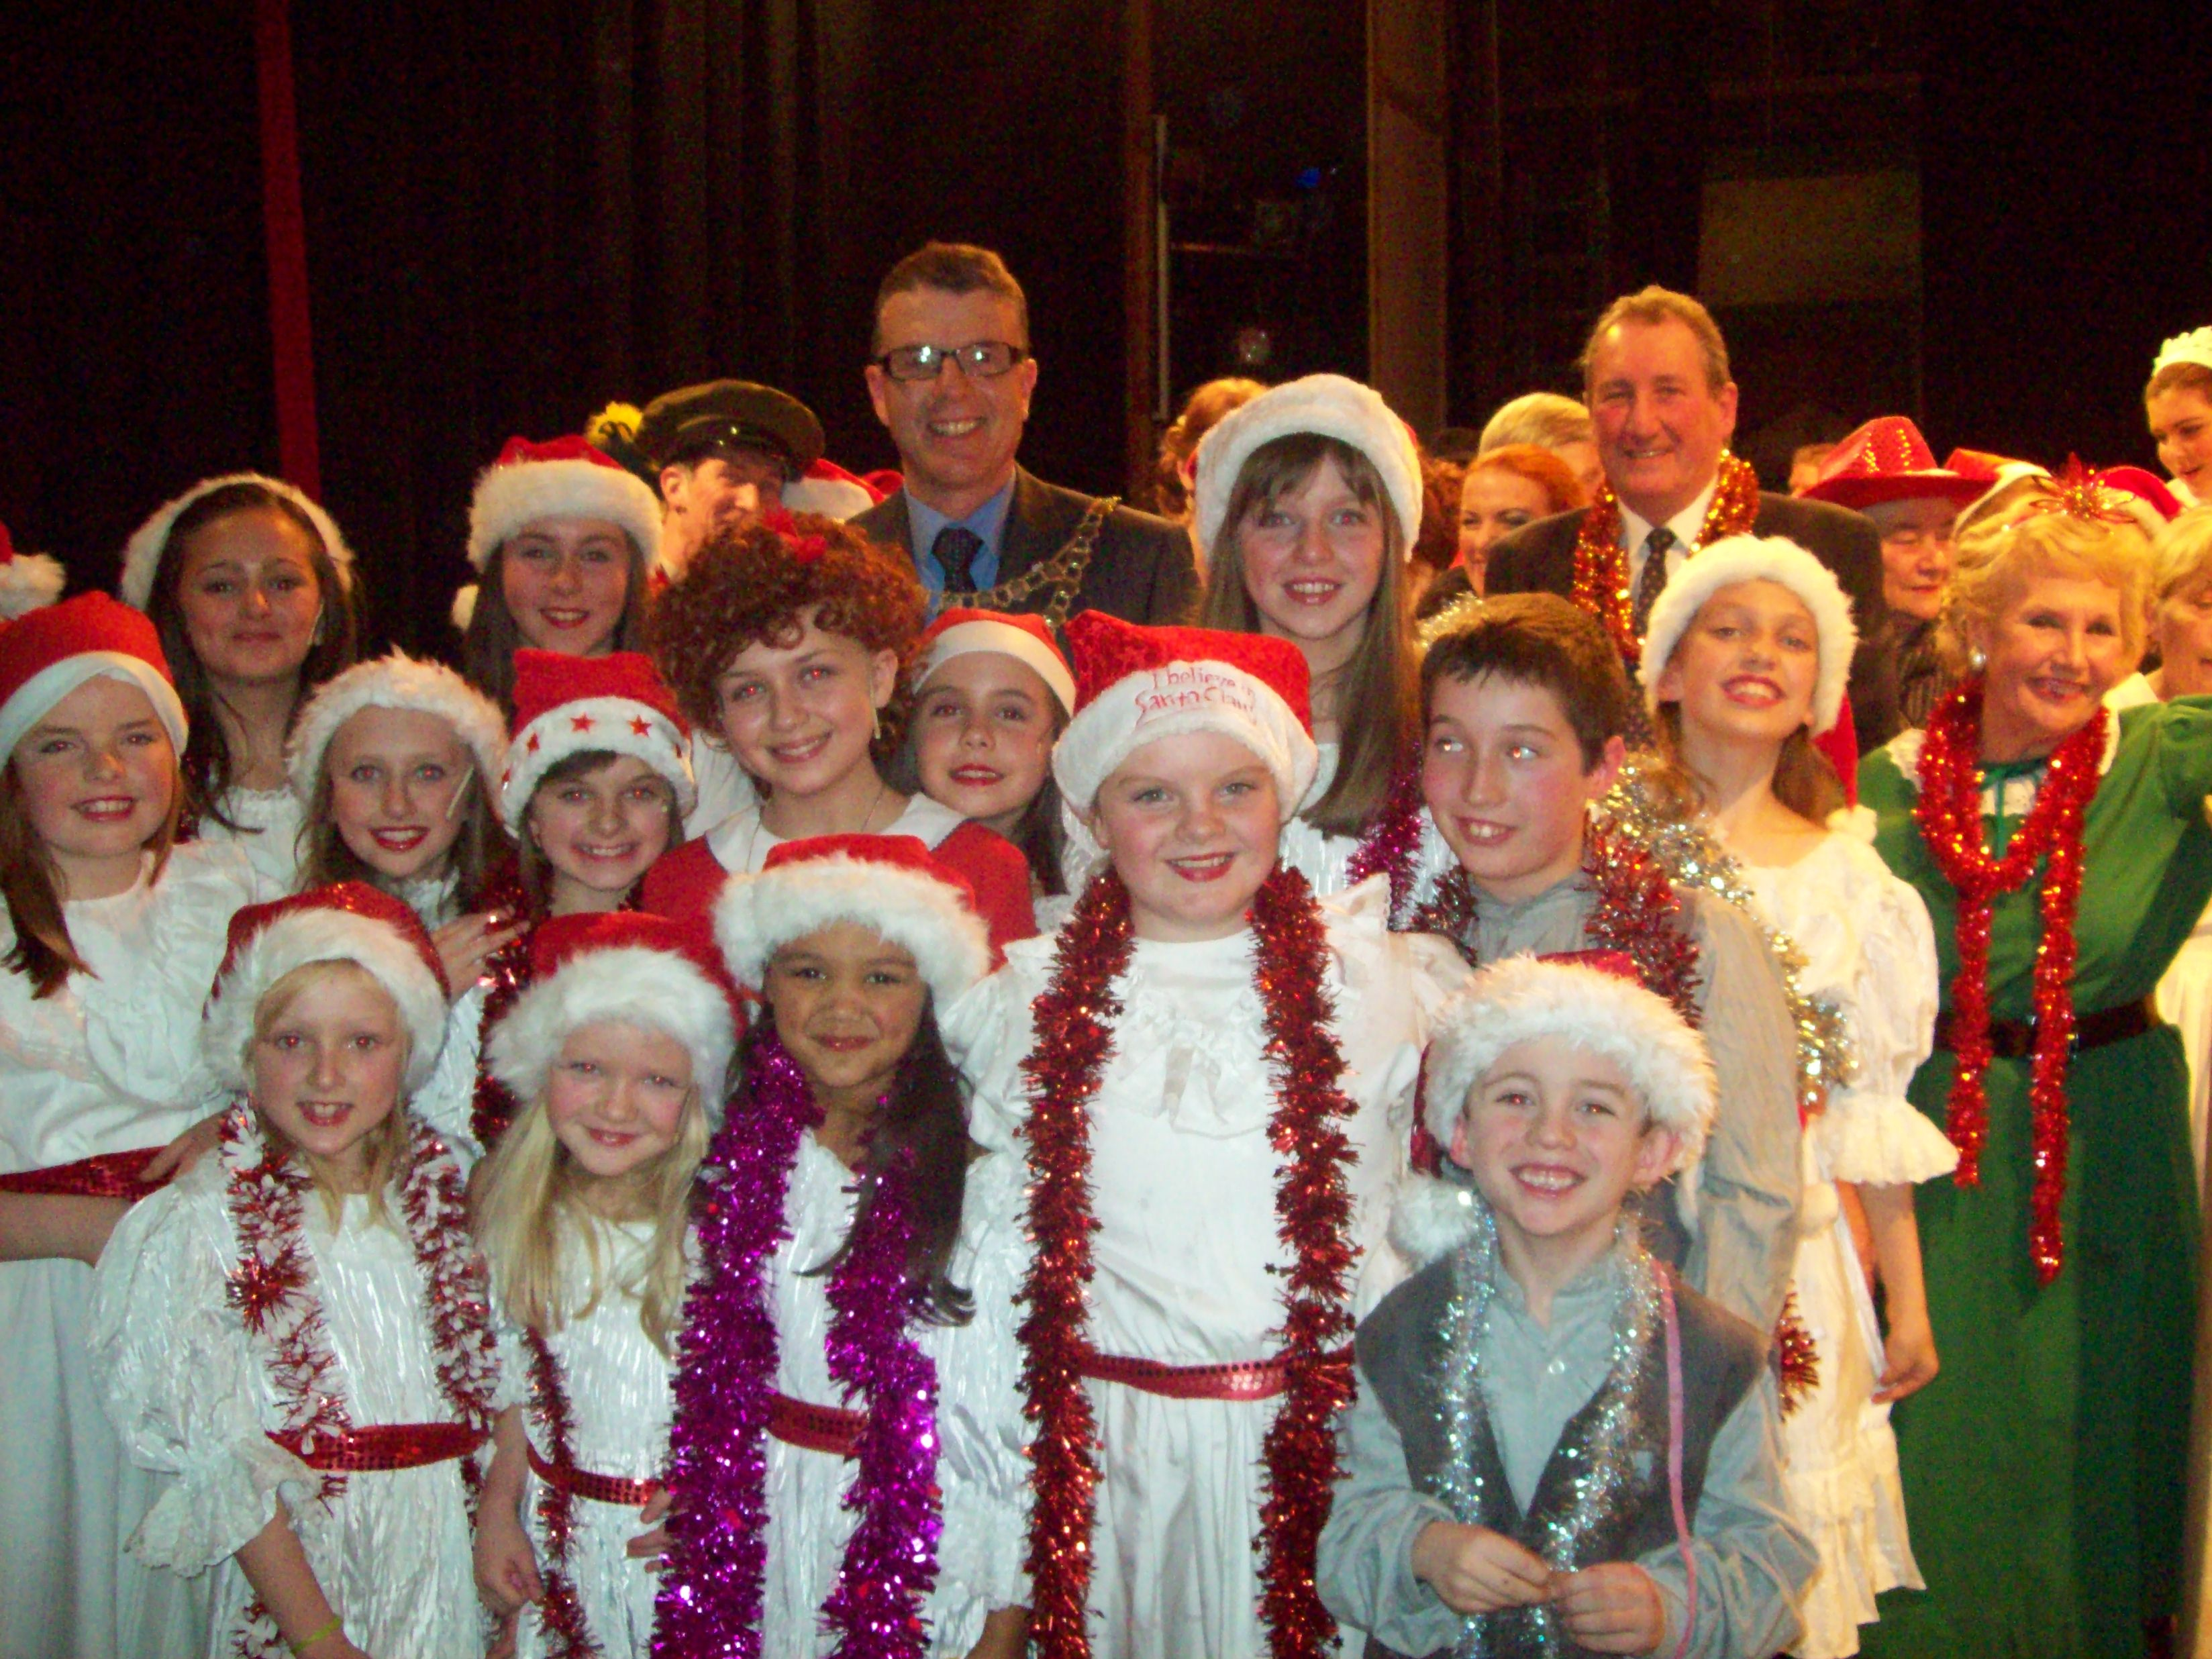 Mayor of Maghull Cllr Steve Kermode with some of the young cast members of Maghull Musical Theatre Company's performance of Annie.